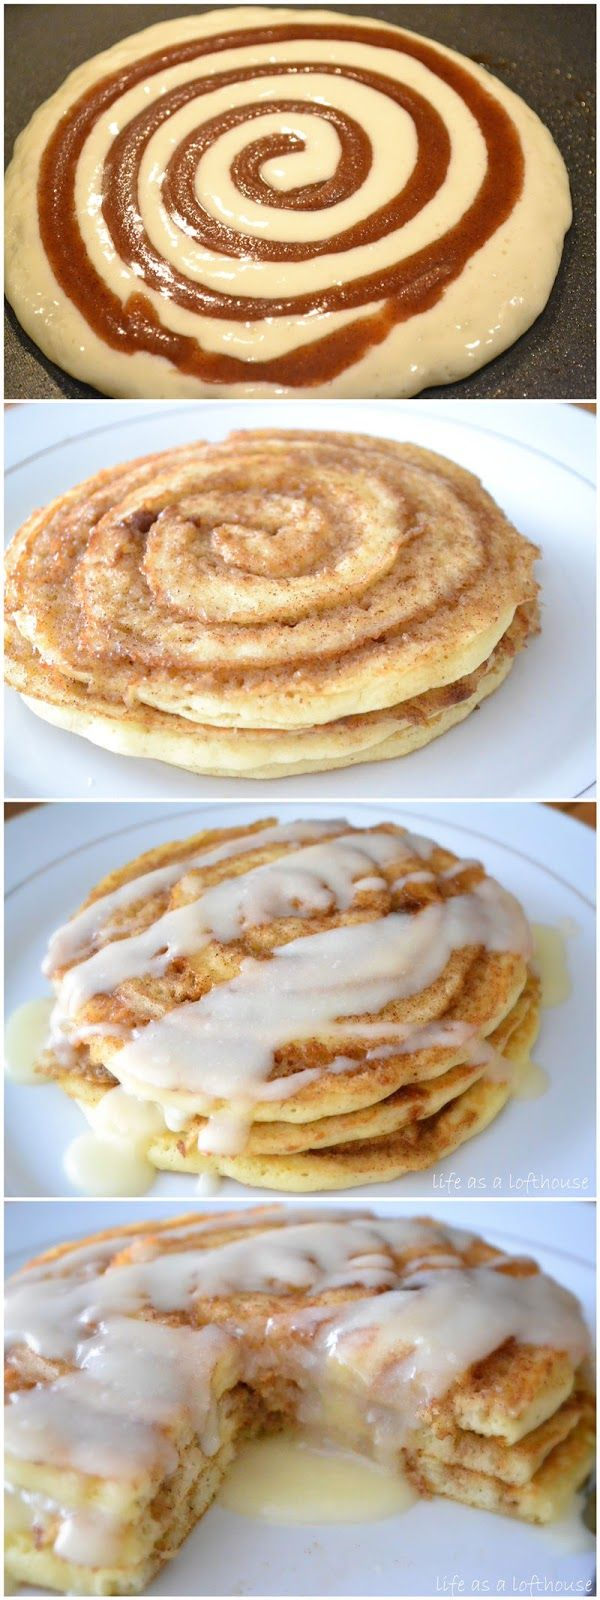 Cinnamon Roll Pancakes - Super Cheap and Easy to make when you don't have a meal plan... and EXTREMELY Delish! Plus you can buy pancake mix ...